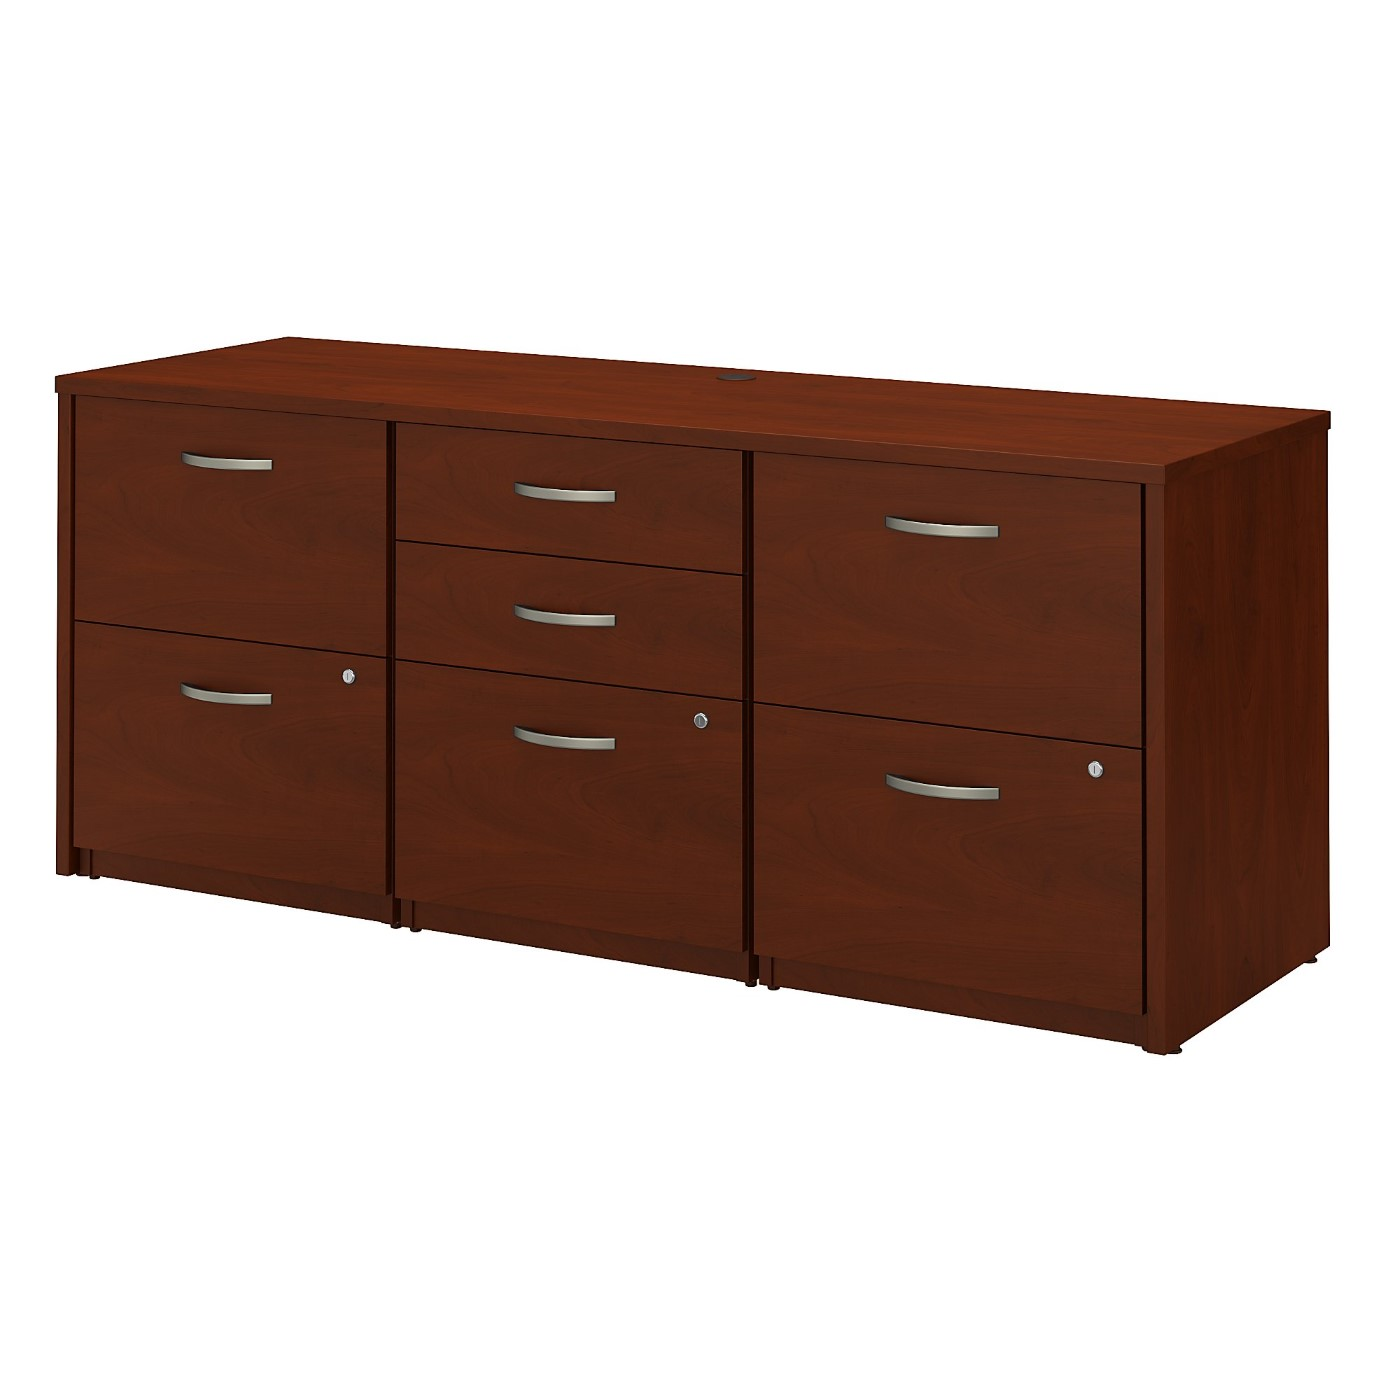 <font color=#c60><b>BUSH BUSINESS FURNITURE SERIES C ELITE STORAGE CREDENZA. FREE SHIPPING|TAA COMPLIANT|AMERICAN MADE 30H x 72L x 72W</font></b>